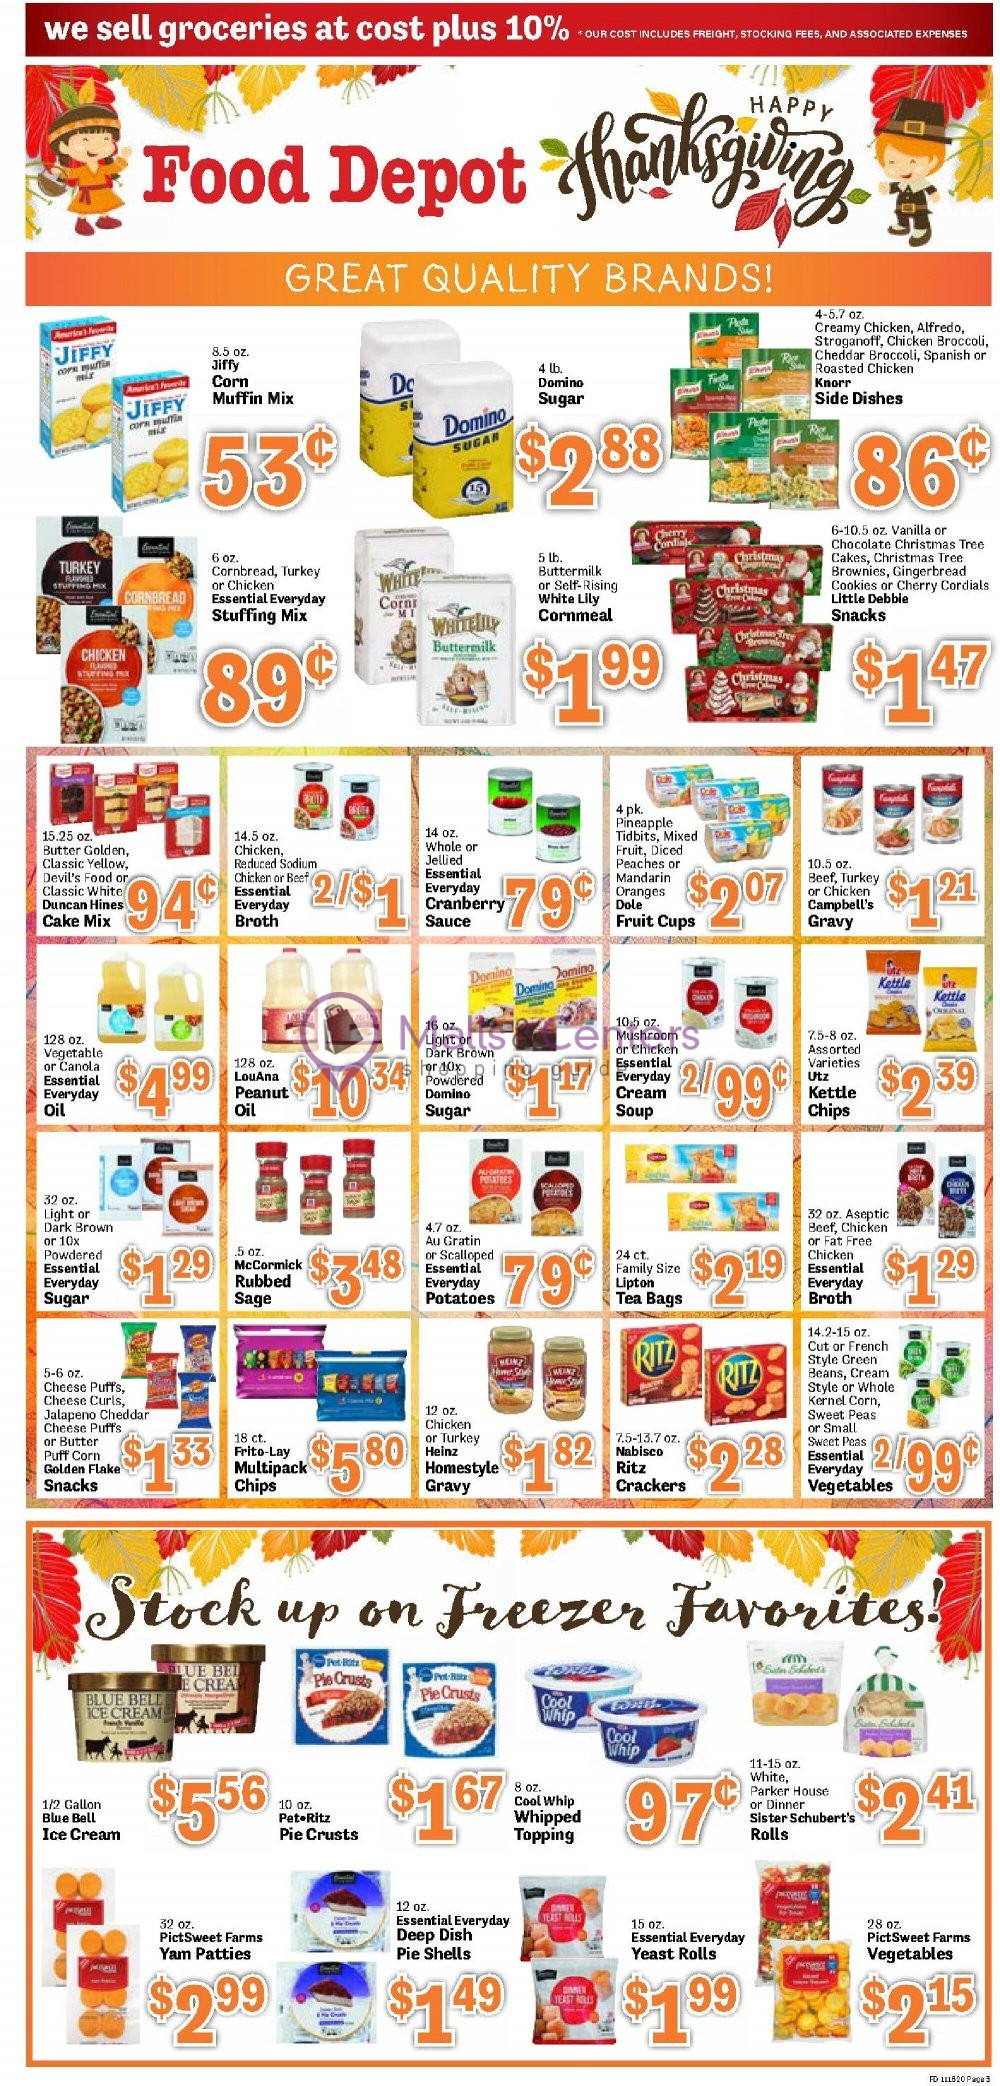 Food Depot Weekly ad valid from 11/26/2020 to 11/29/2020 ...